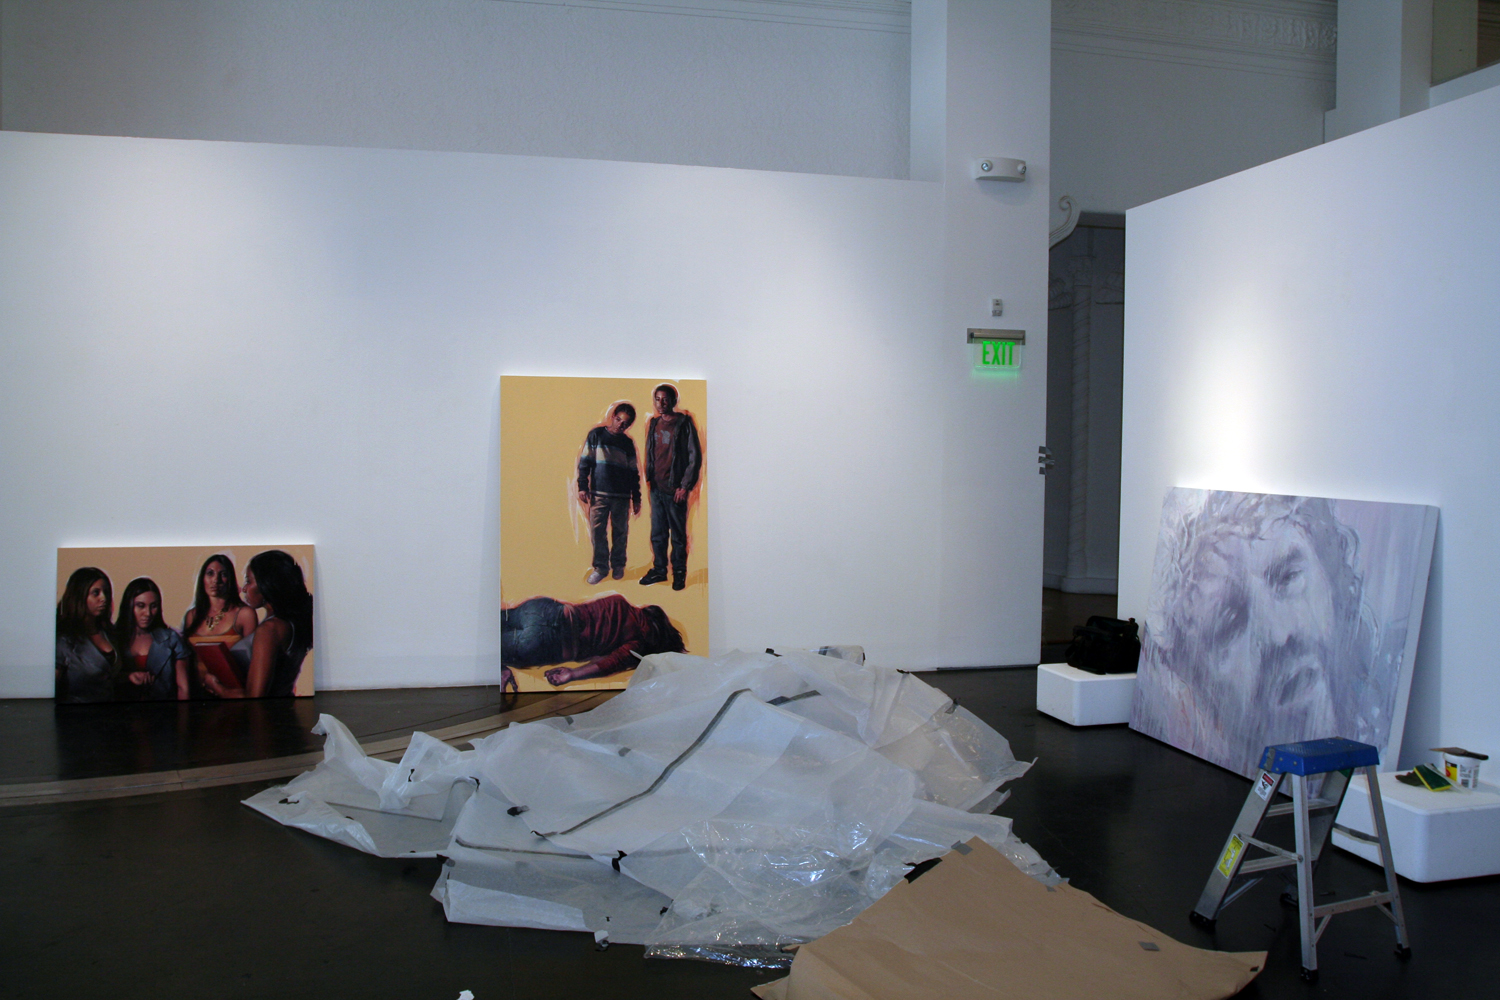 Installing at Gallery C